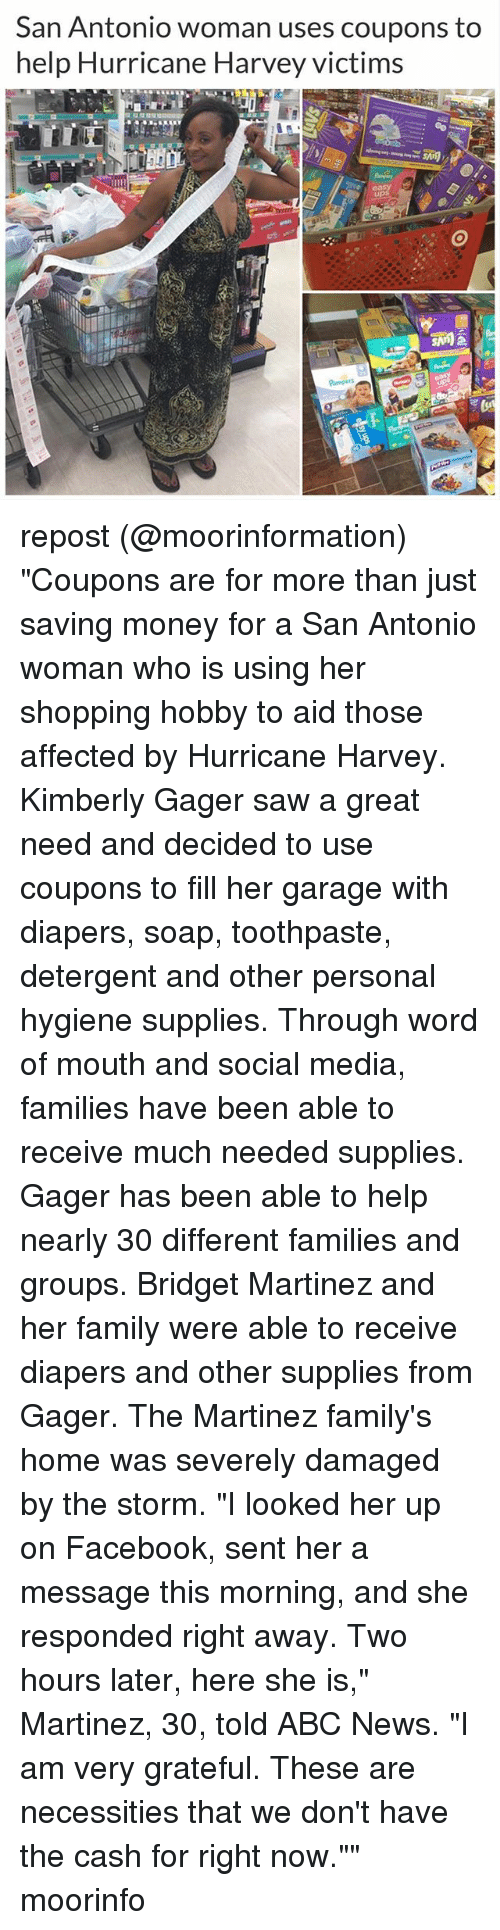 "Senting: San Antonio woman uses coupons to  help Hurricane Harvey victims repost (@moorinformation) ""Coupons are for more than just saving money for a San Antonio woman who is using her shopping hobby to aid those affected by Hurricane Harvey. Kimberly Gager saw a great need and decided to use coupons to fill her garage with diapers, soap, toothpaste, detergent and other personal hygiene supplies. Through word of mouth and social media, families have been able to receive much needed supplies. Gager has been able to help nearly 30 different families and groups. Bridget Martinez and her family were able to receive diapers and other supplies from Gager. The Martinez family's home was severely damaged by the storm. ""I looked her up on Facebook, sent her a message this morning, and she responded right away. Two hours later, here she is,"" Martinez, 30, told ABC News. ""I am very grateful. These are necessities that we don't have the cash for right now."""" moorinfo"